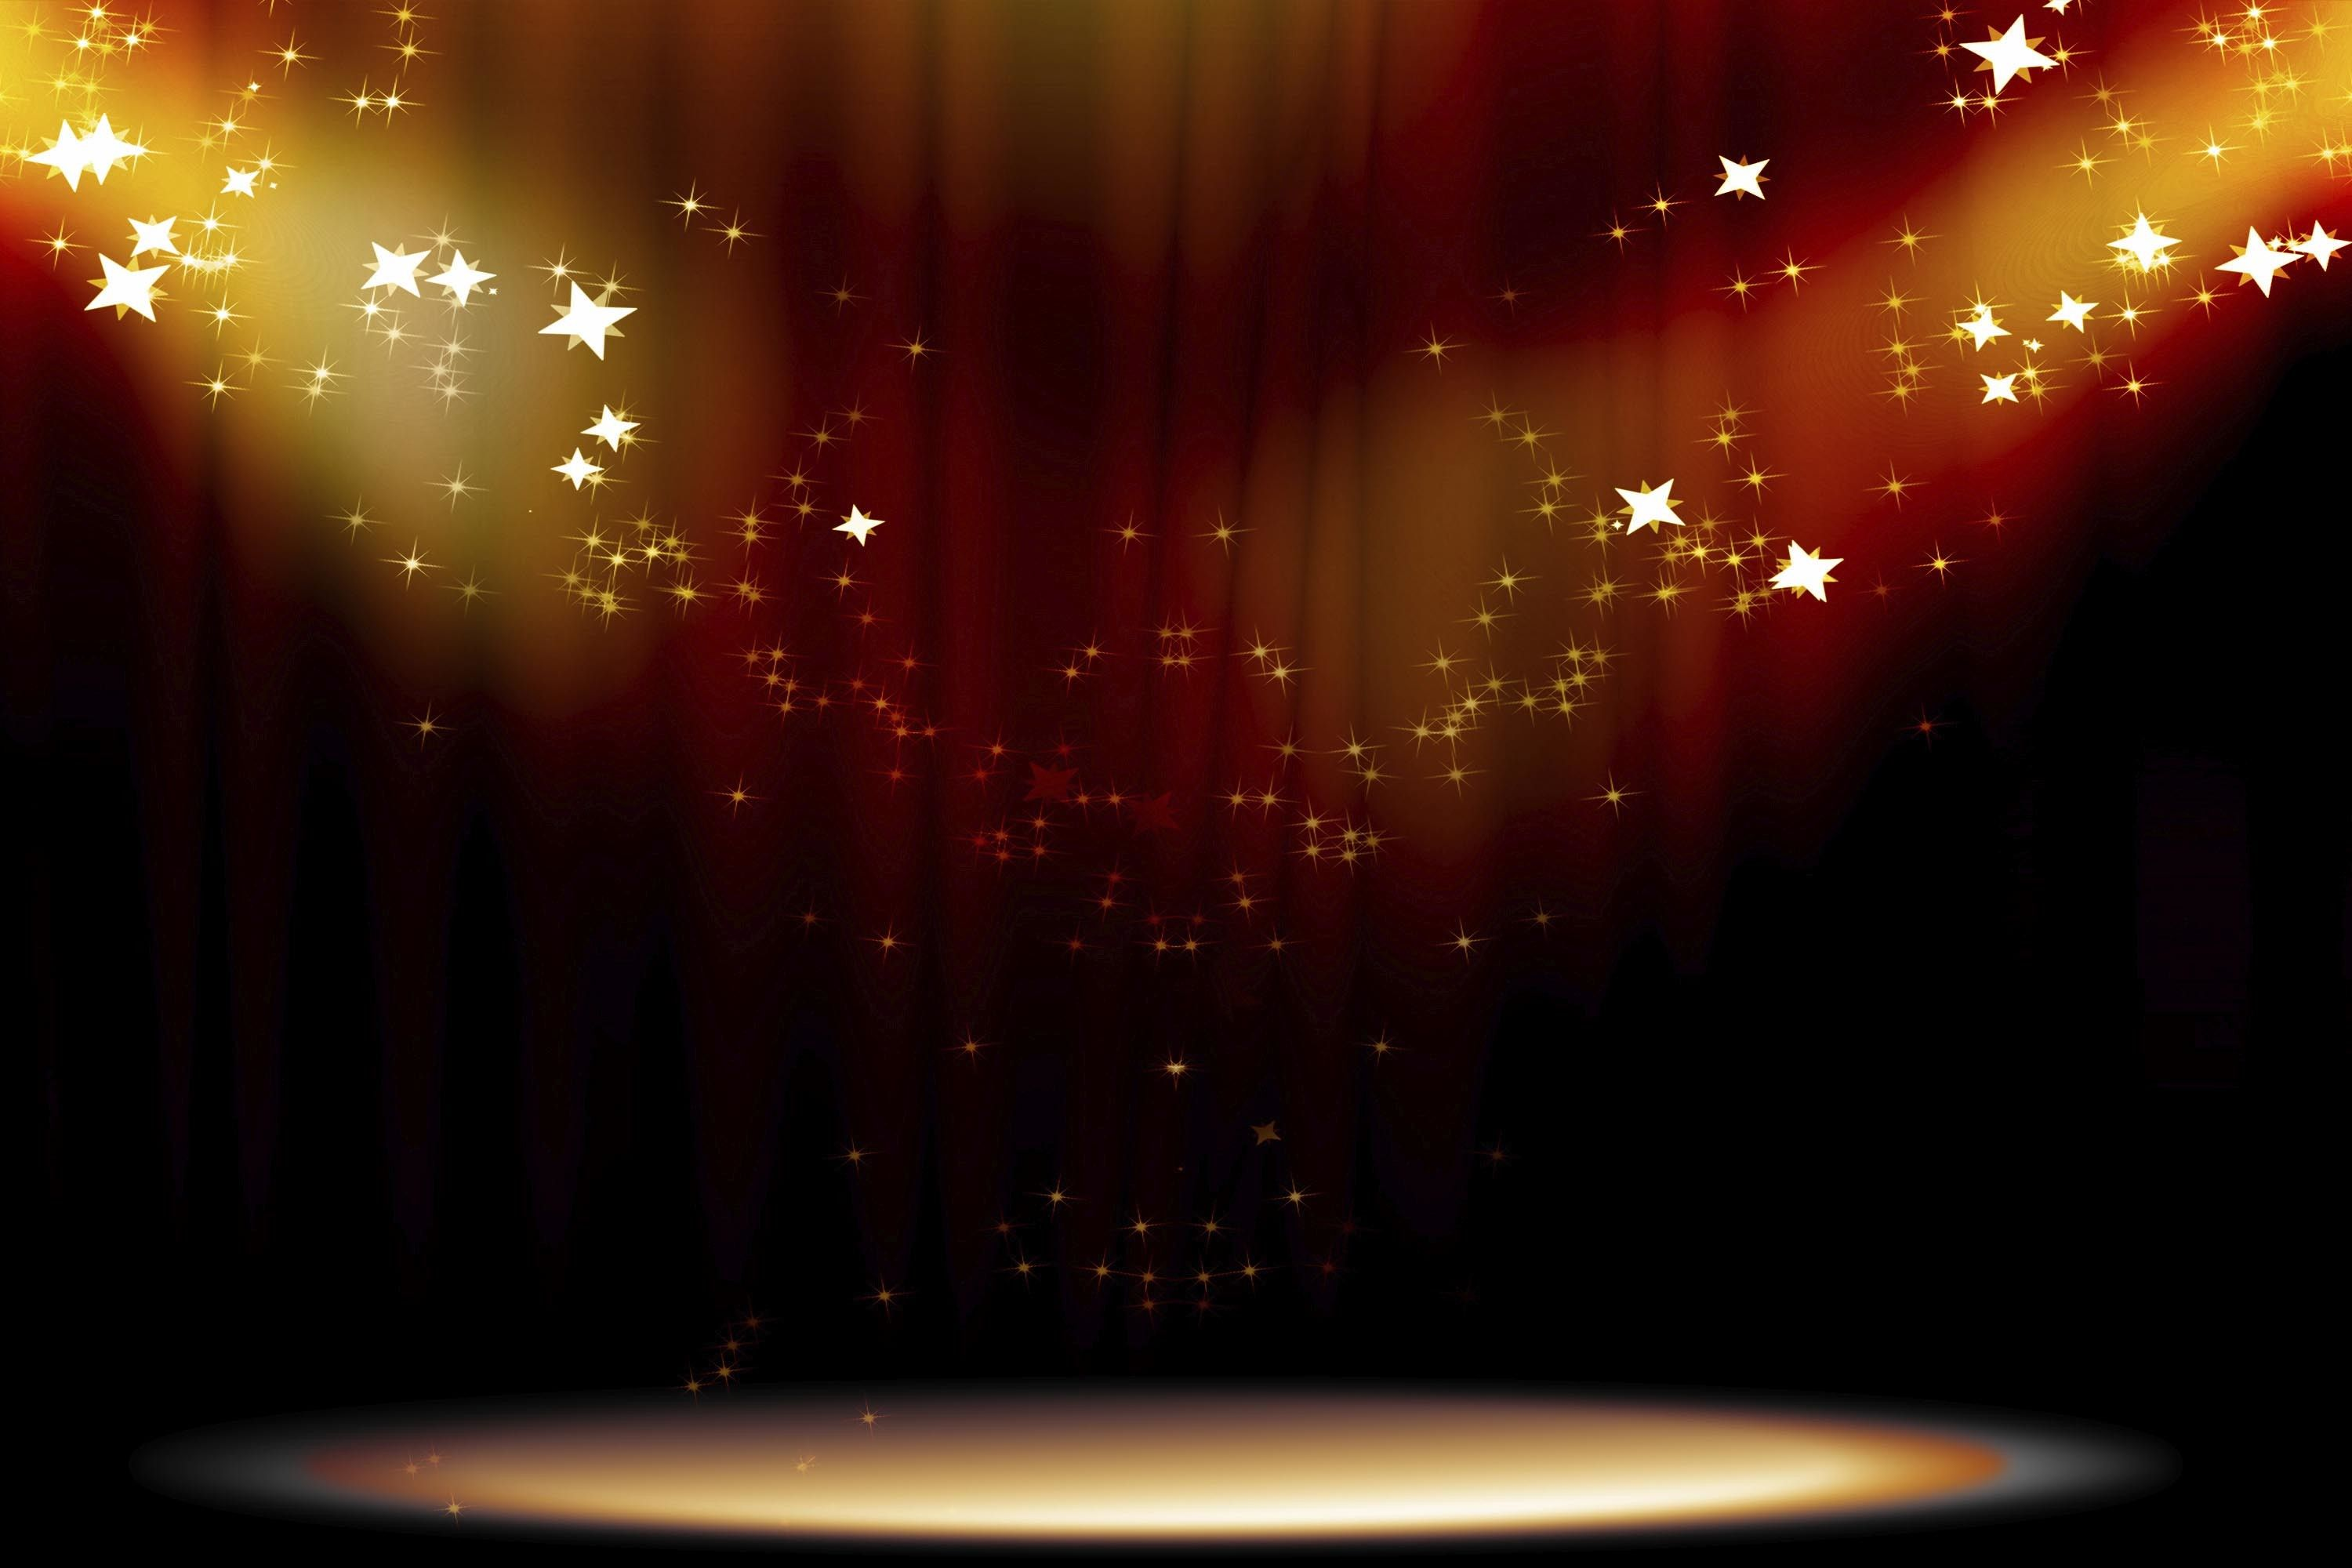 Images For > Stage Spotlight Background 3000x2000 | Stage background, Stage  lighting, Stage spotlights